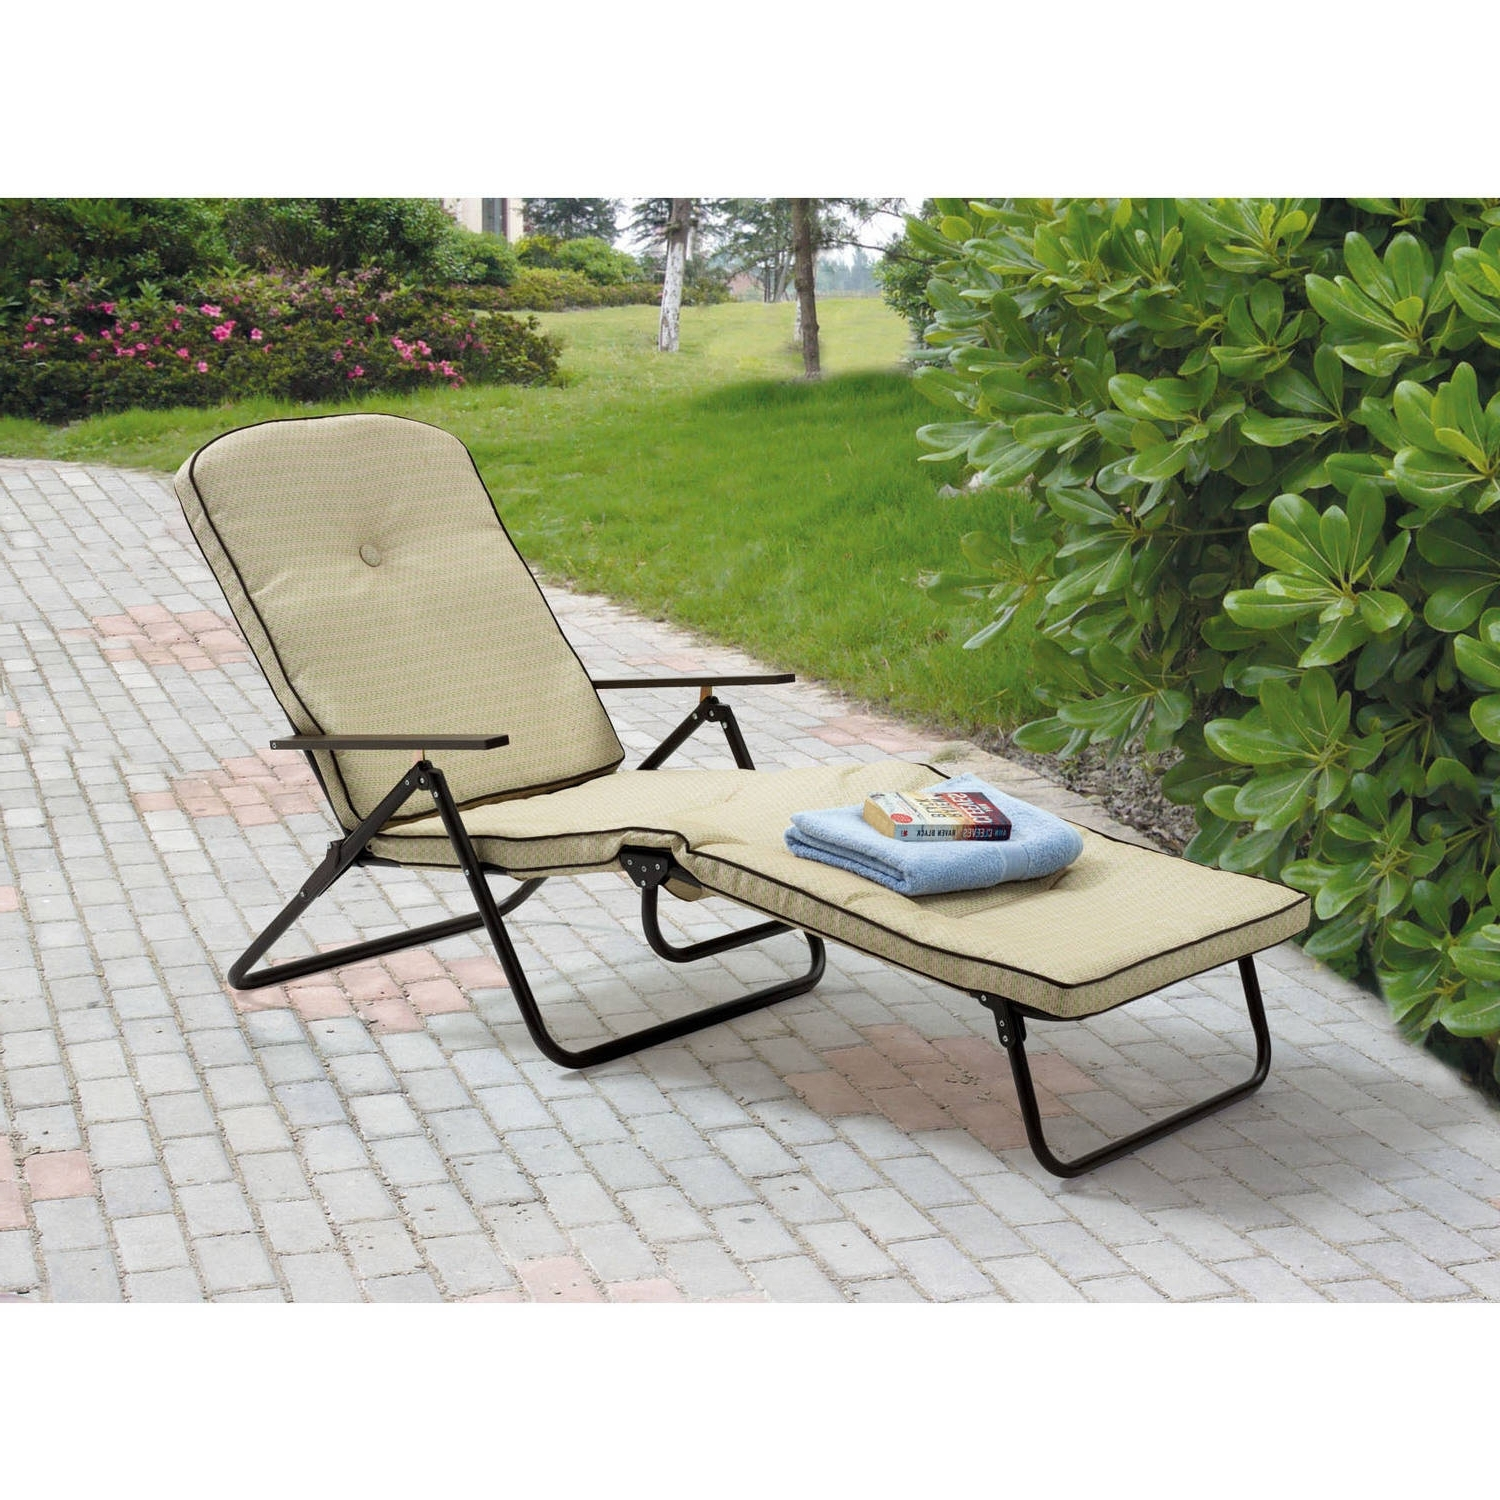 Latest Mainstays Sand Dune Outdoor Padded Folding Chaise Lounge, Tan Throughout Folding Chaise Lounge Lawn Chairs (View 8 of 15)